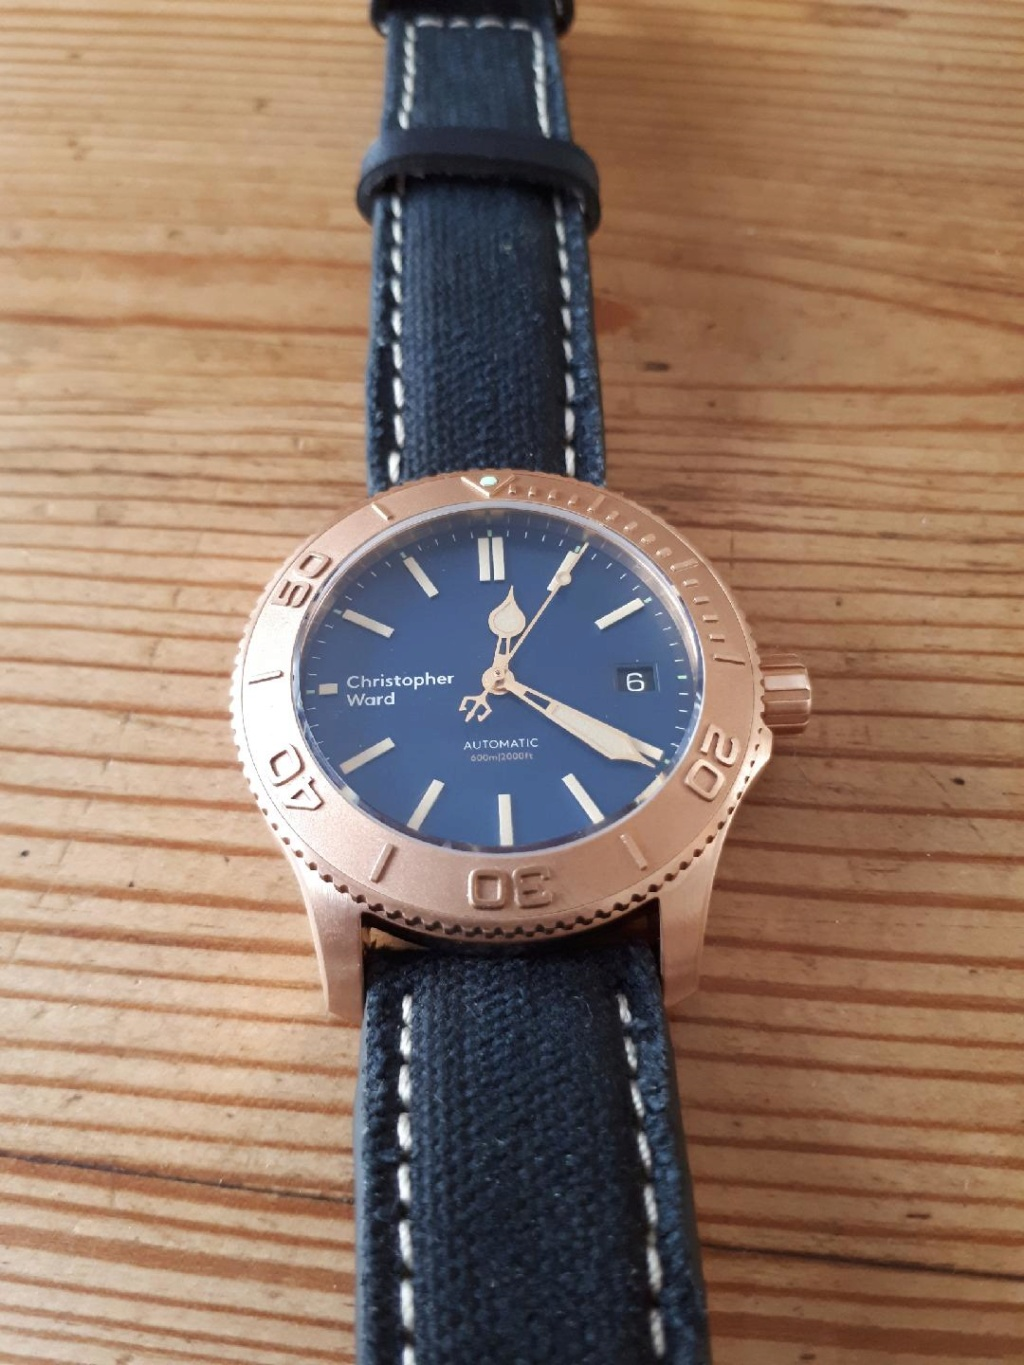 ward - Christopher ward  Resize10